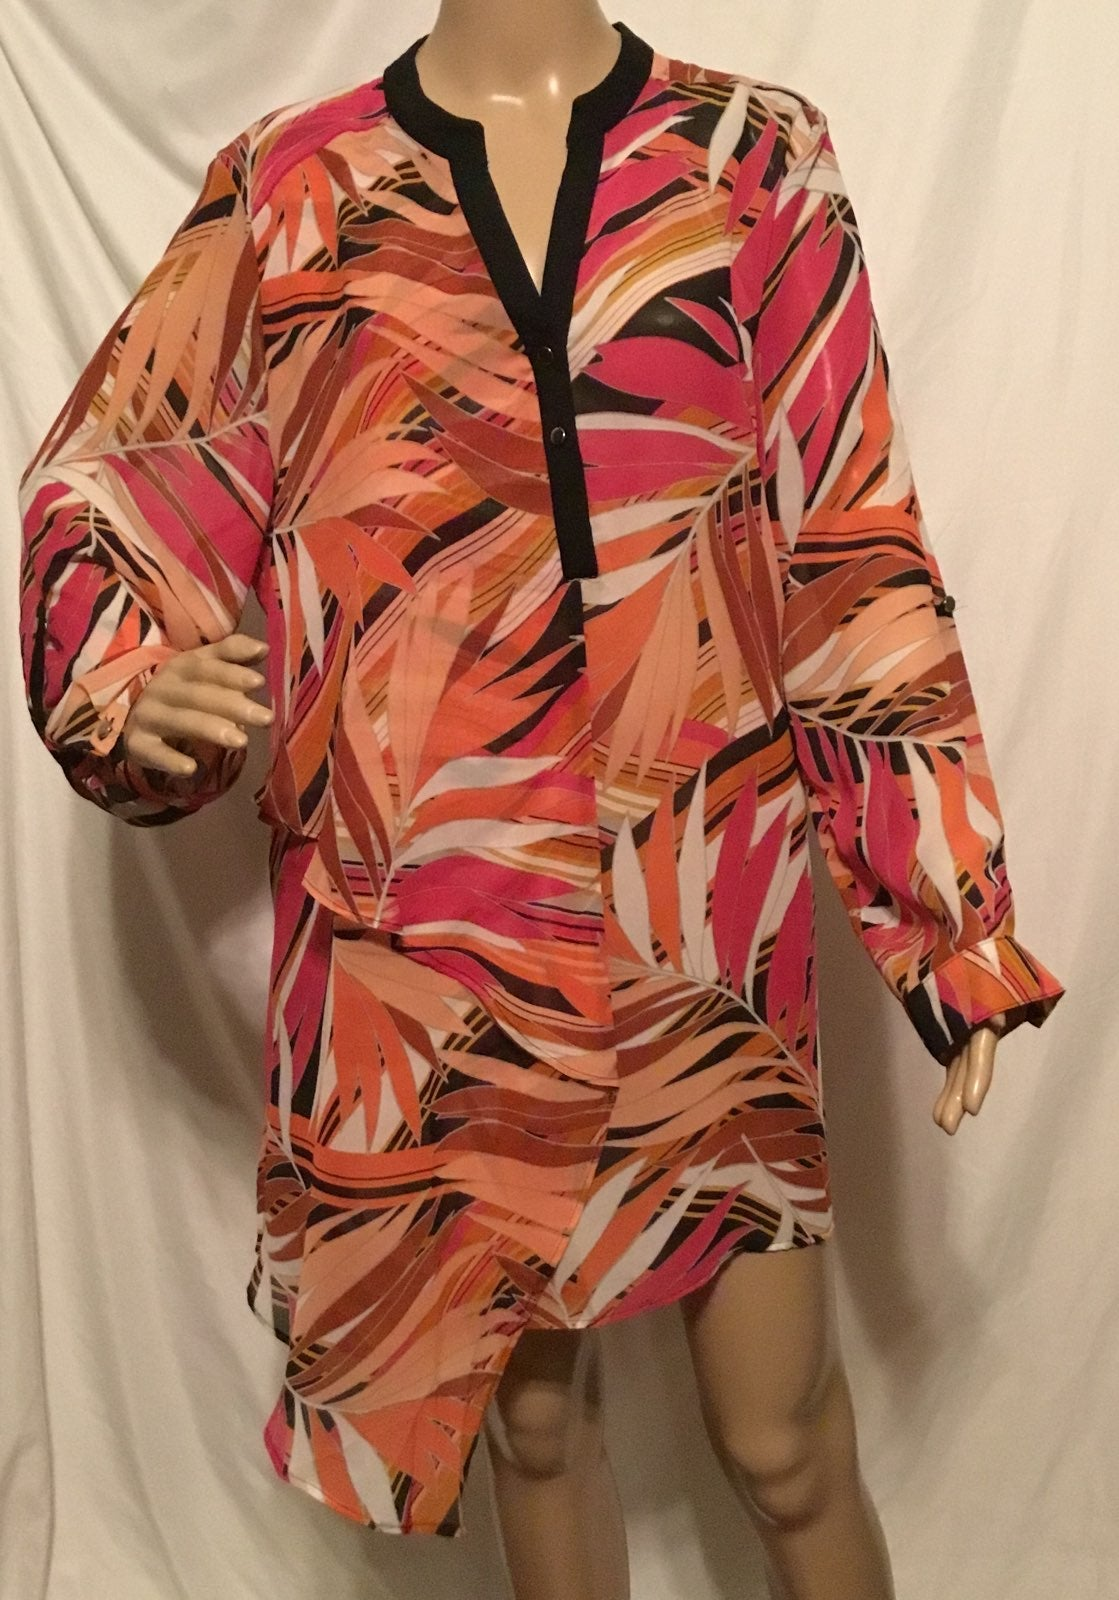 NY COLLECTION PLUS SZ 2X LONG SLEEVES BL